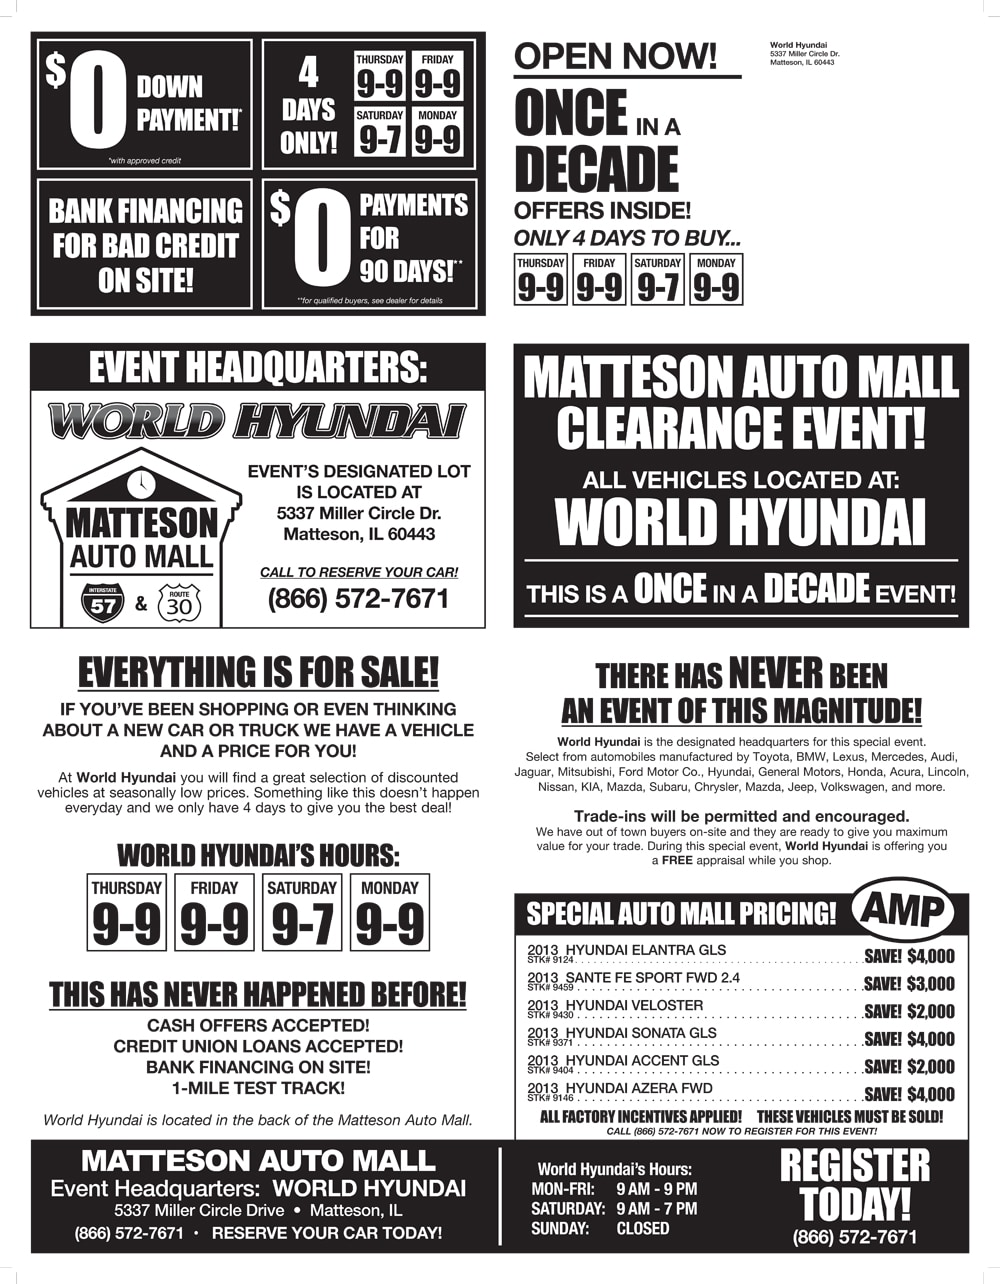 Matteson Auto Mall Clearance Sales Event Chicago Cheap